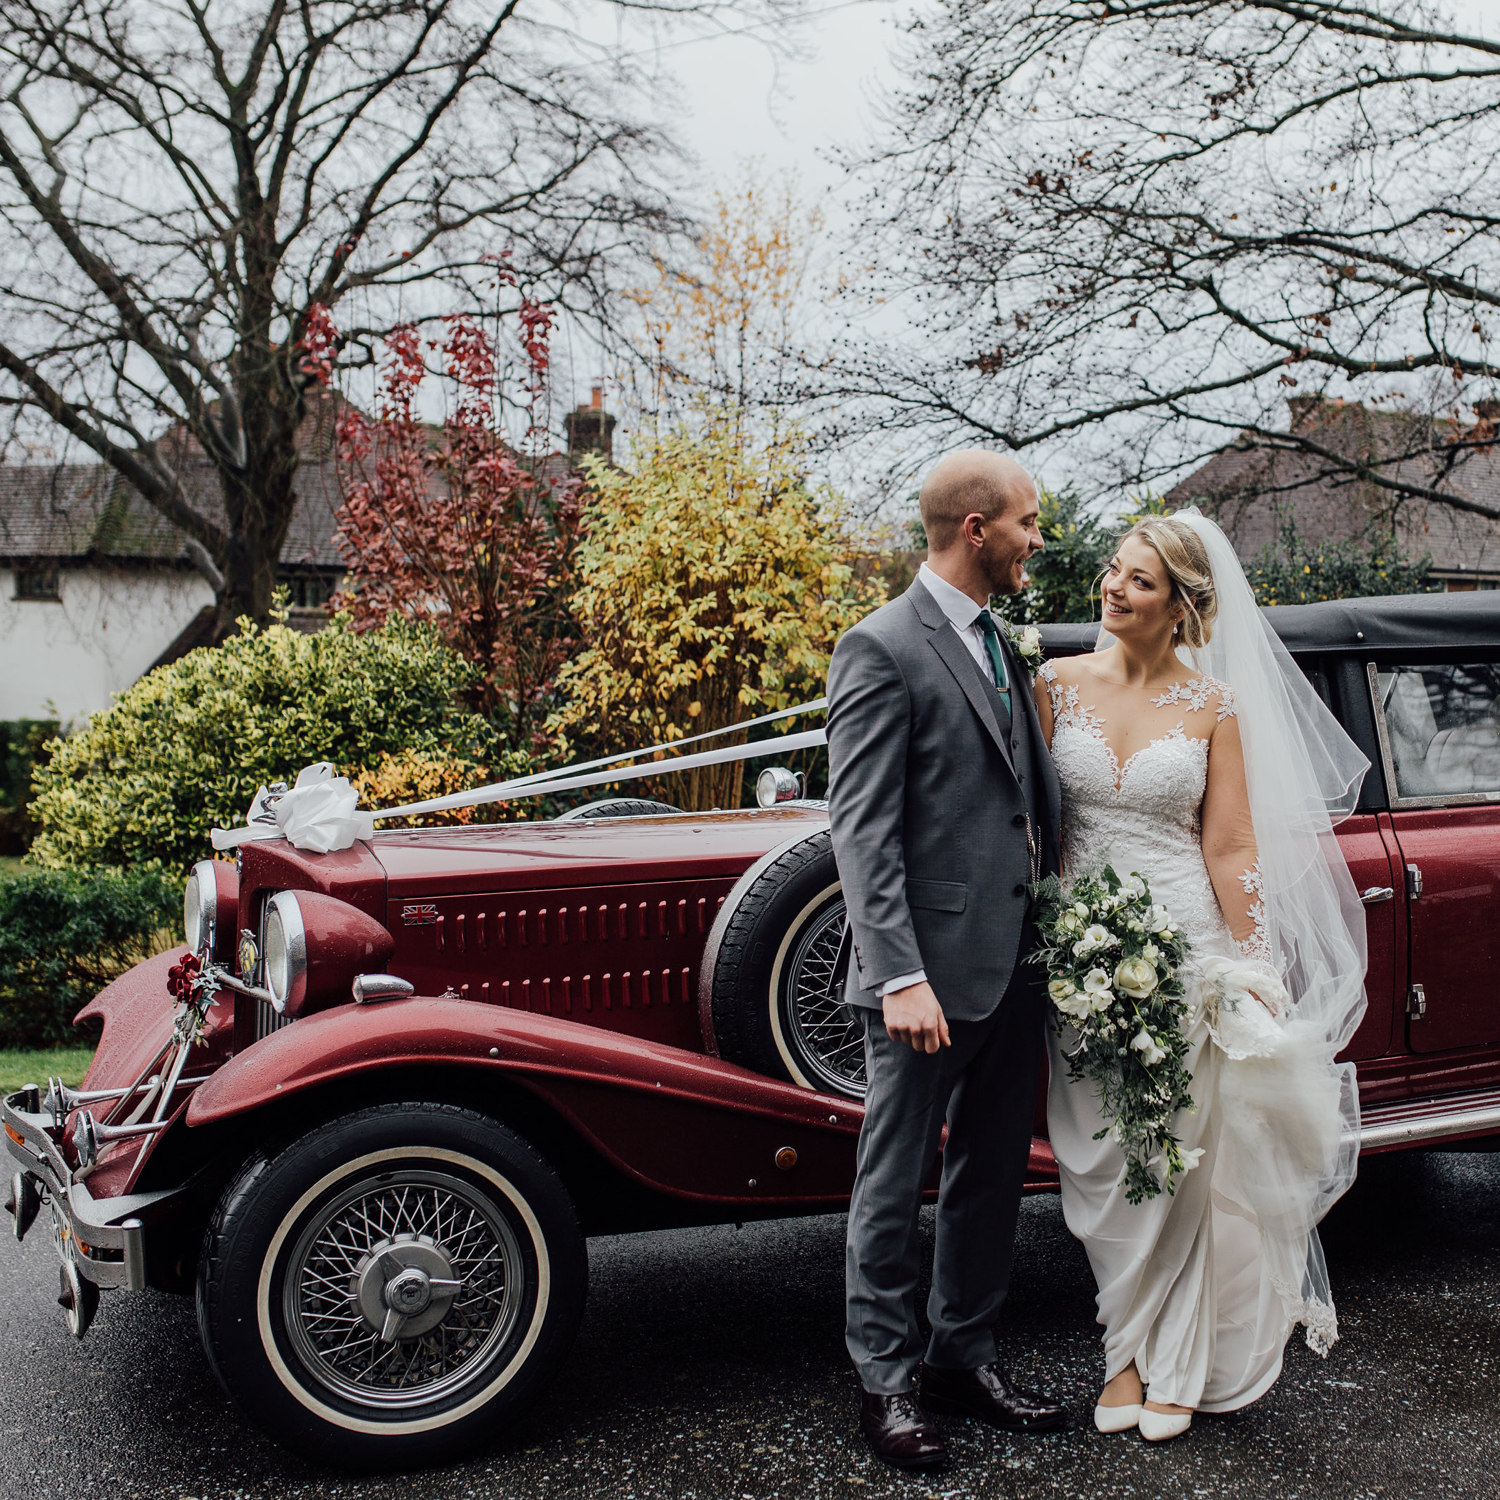 Wedding cars and coaches, wedding transport, classic red wedding car